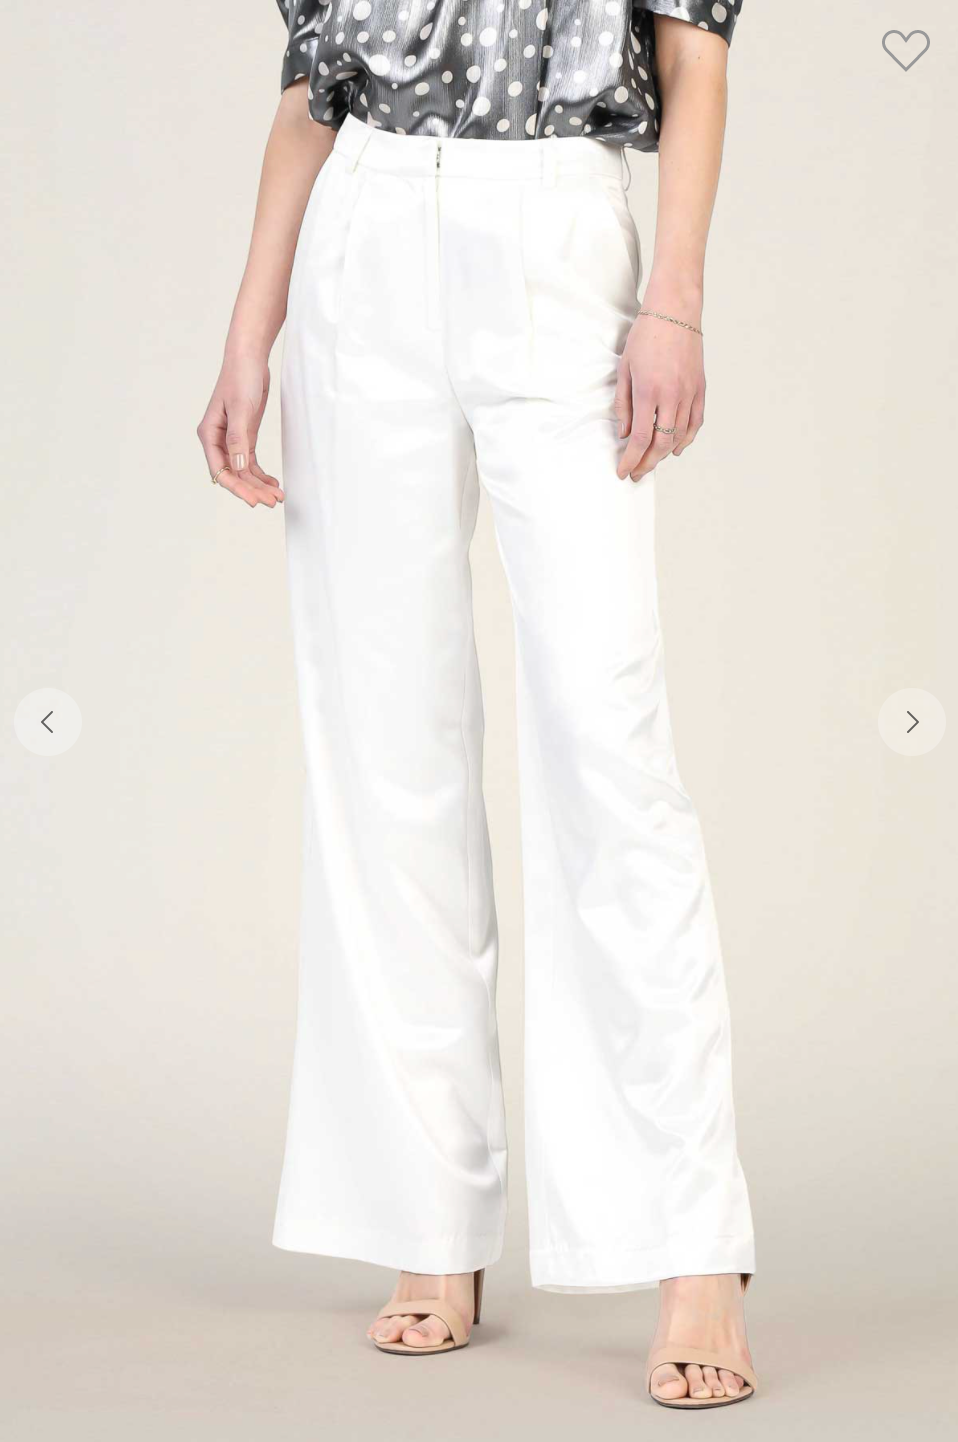 WIDE LEGGED FULL LENGTH PANTS